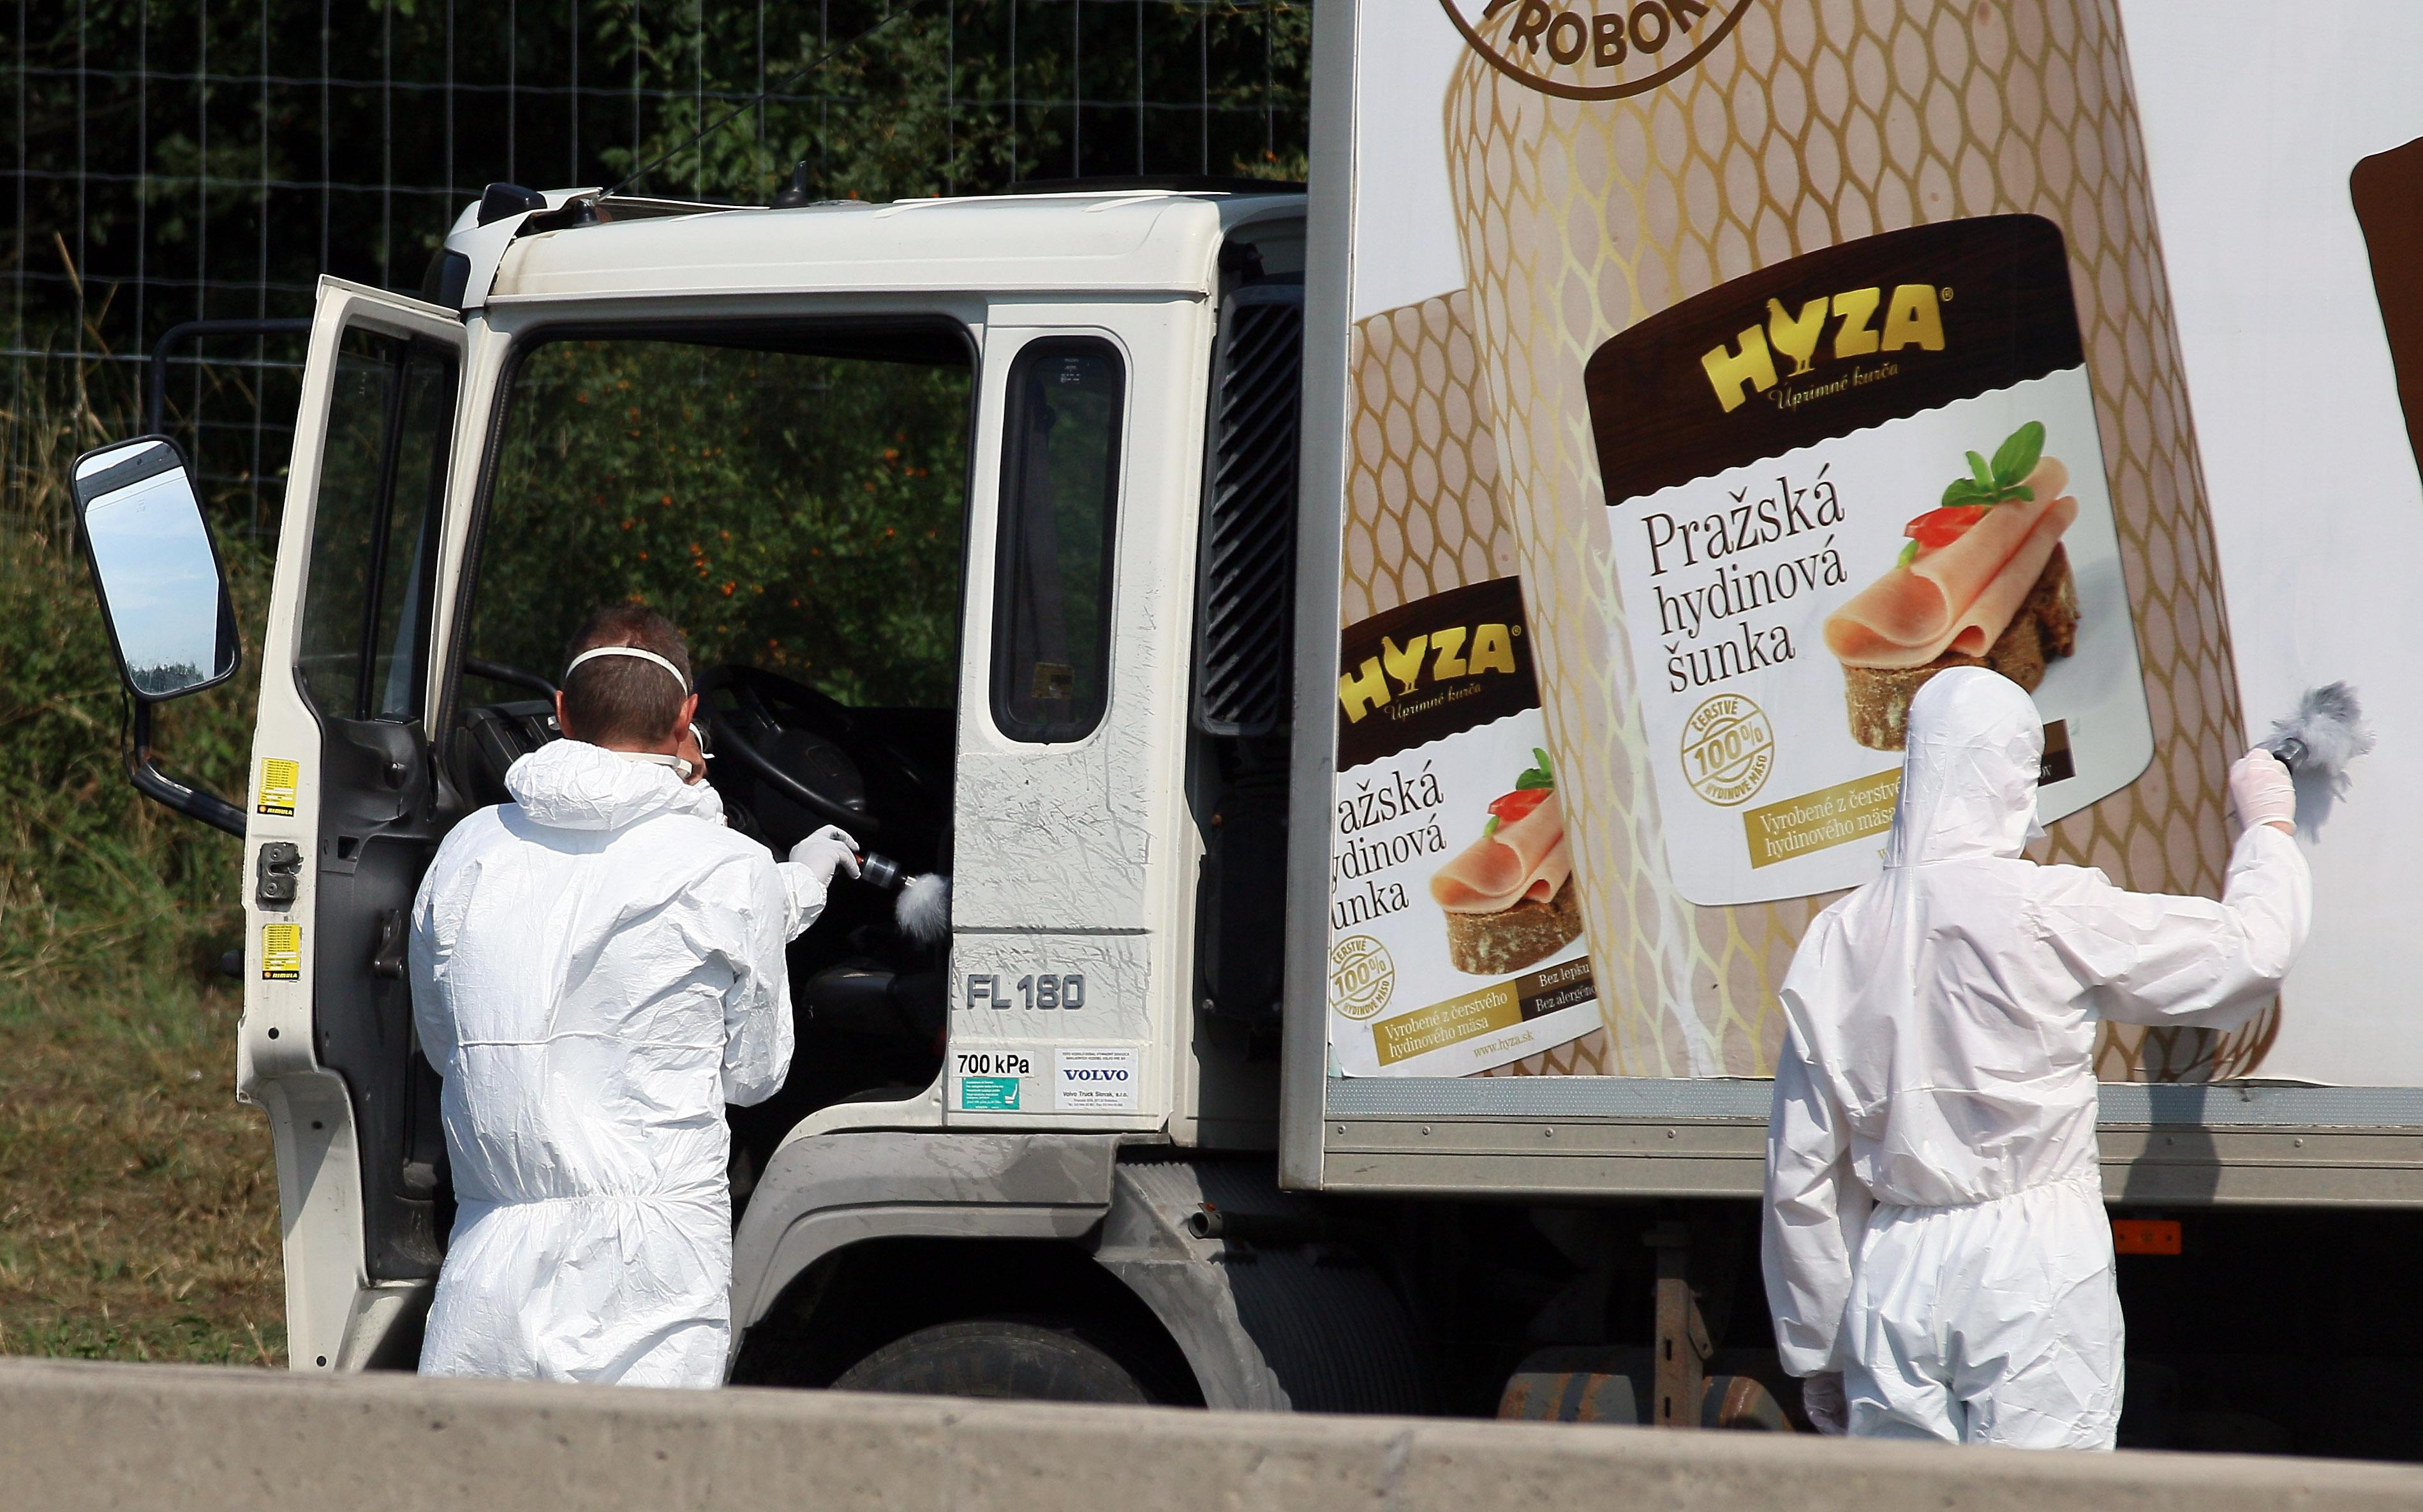 Austrian officials: 71 migrants likely suffocated in truck